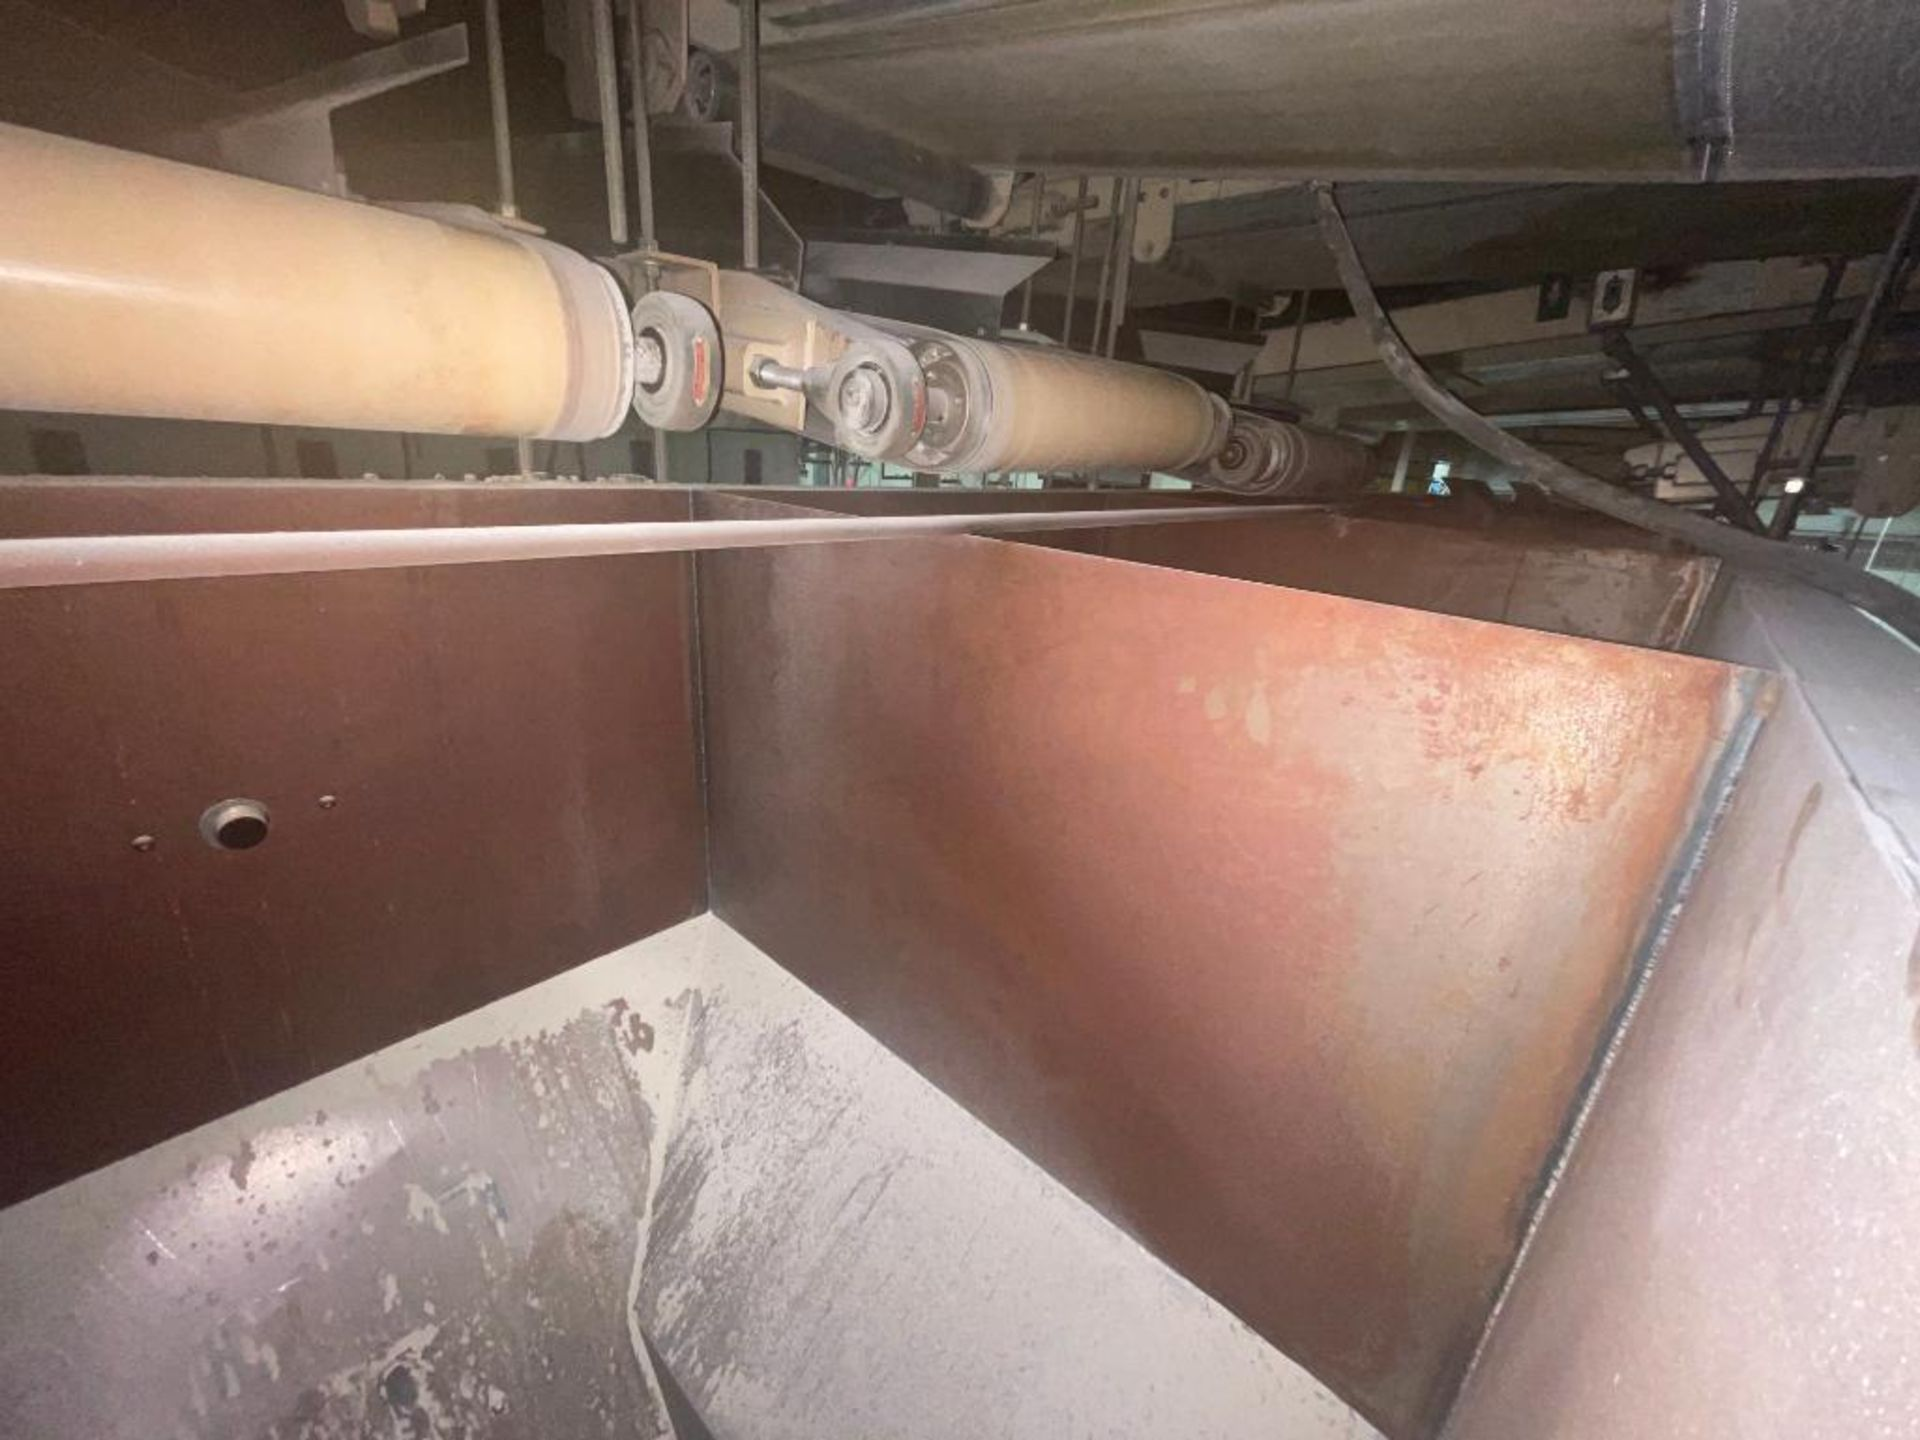 Aseeco 5-bin blending system with 5 Syntron vibratory feeders on bottom - Image 4 of 18